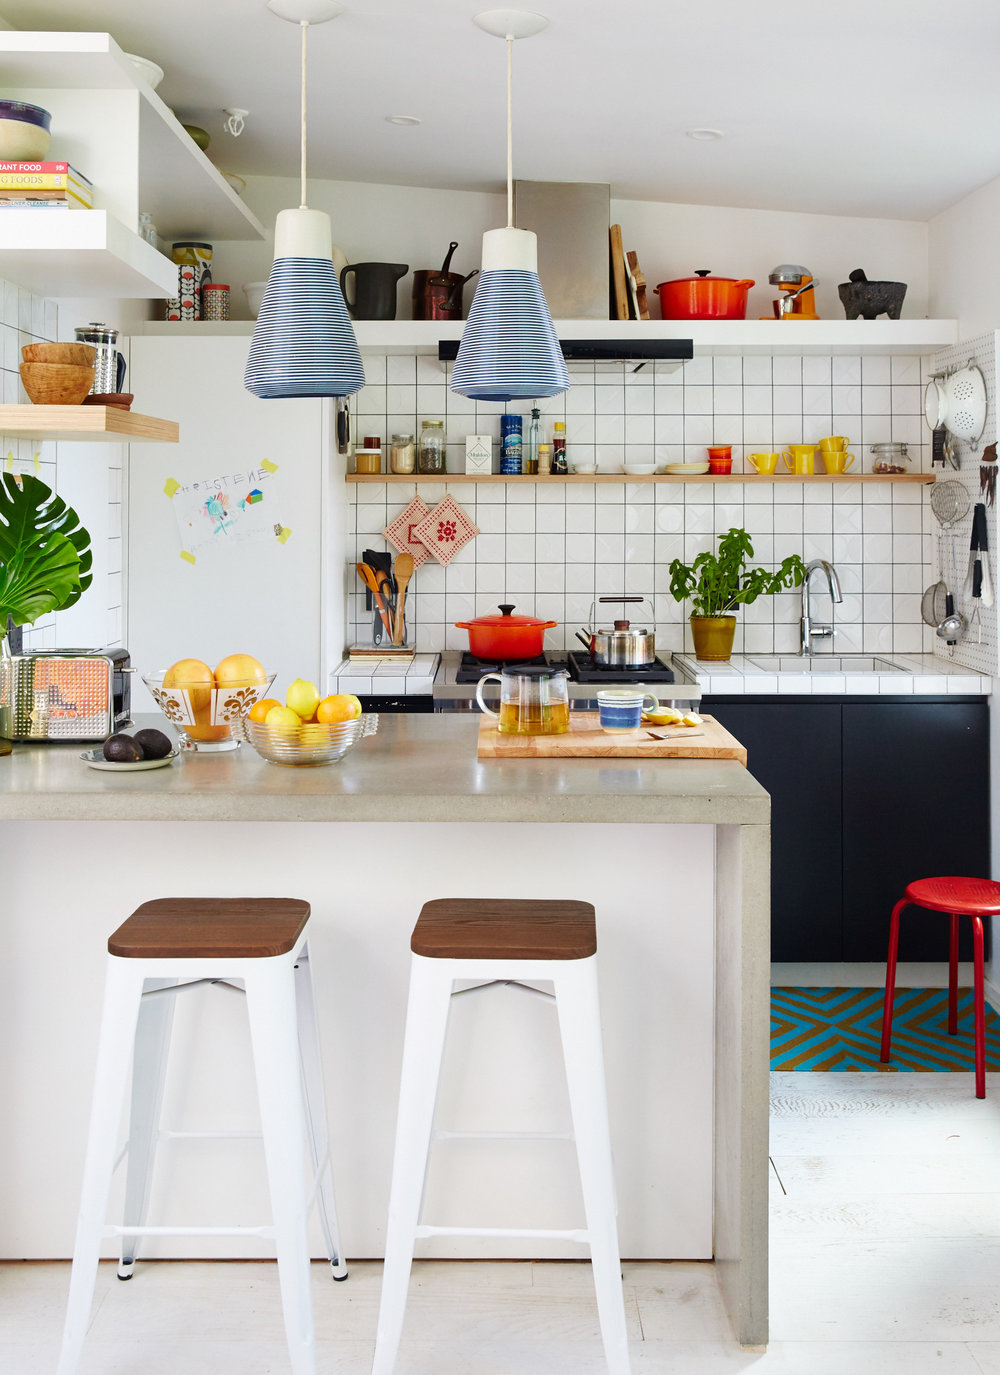 DM_Barberich_Kitchen_076.jpg